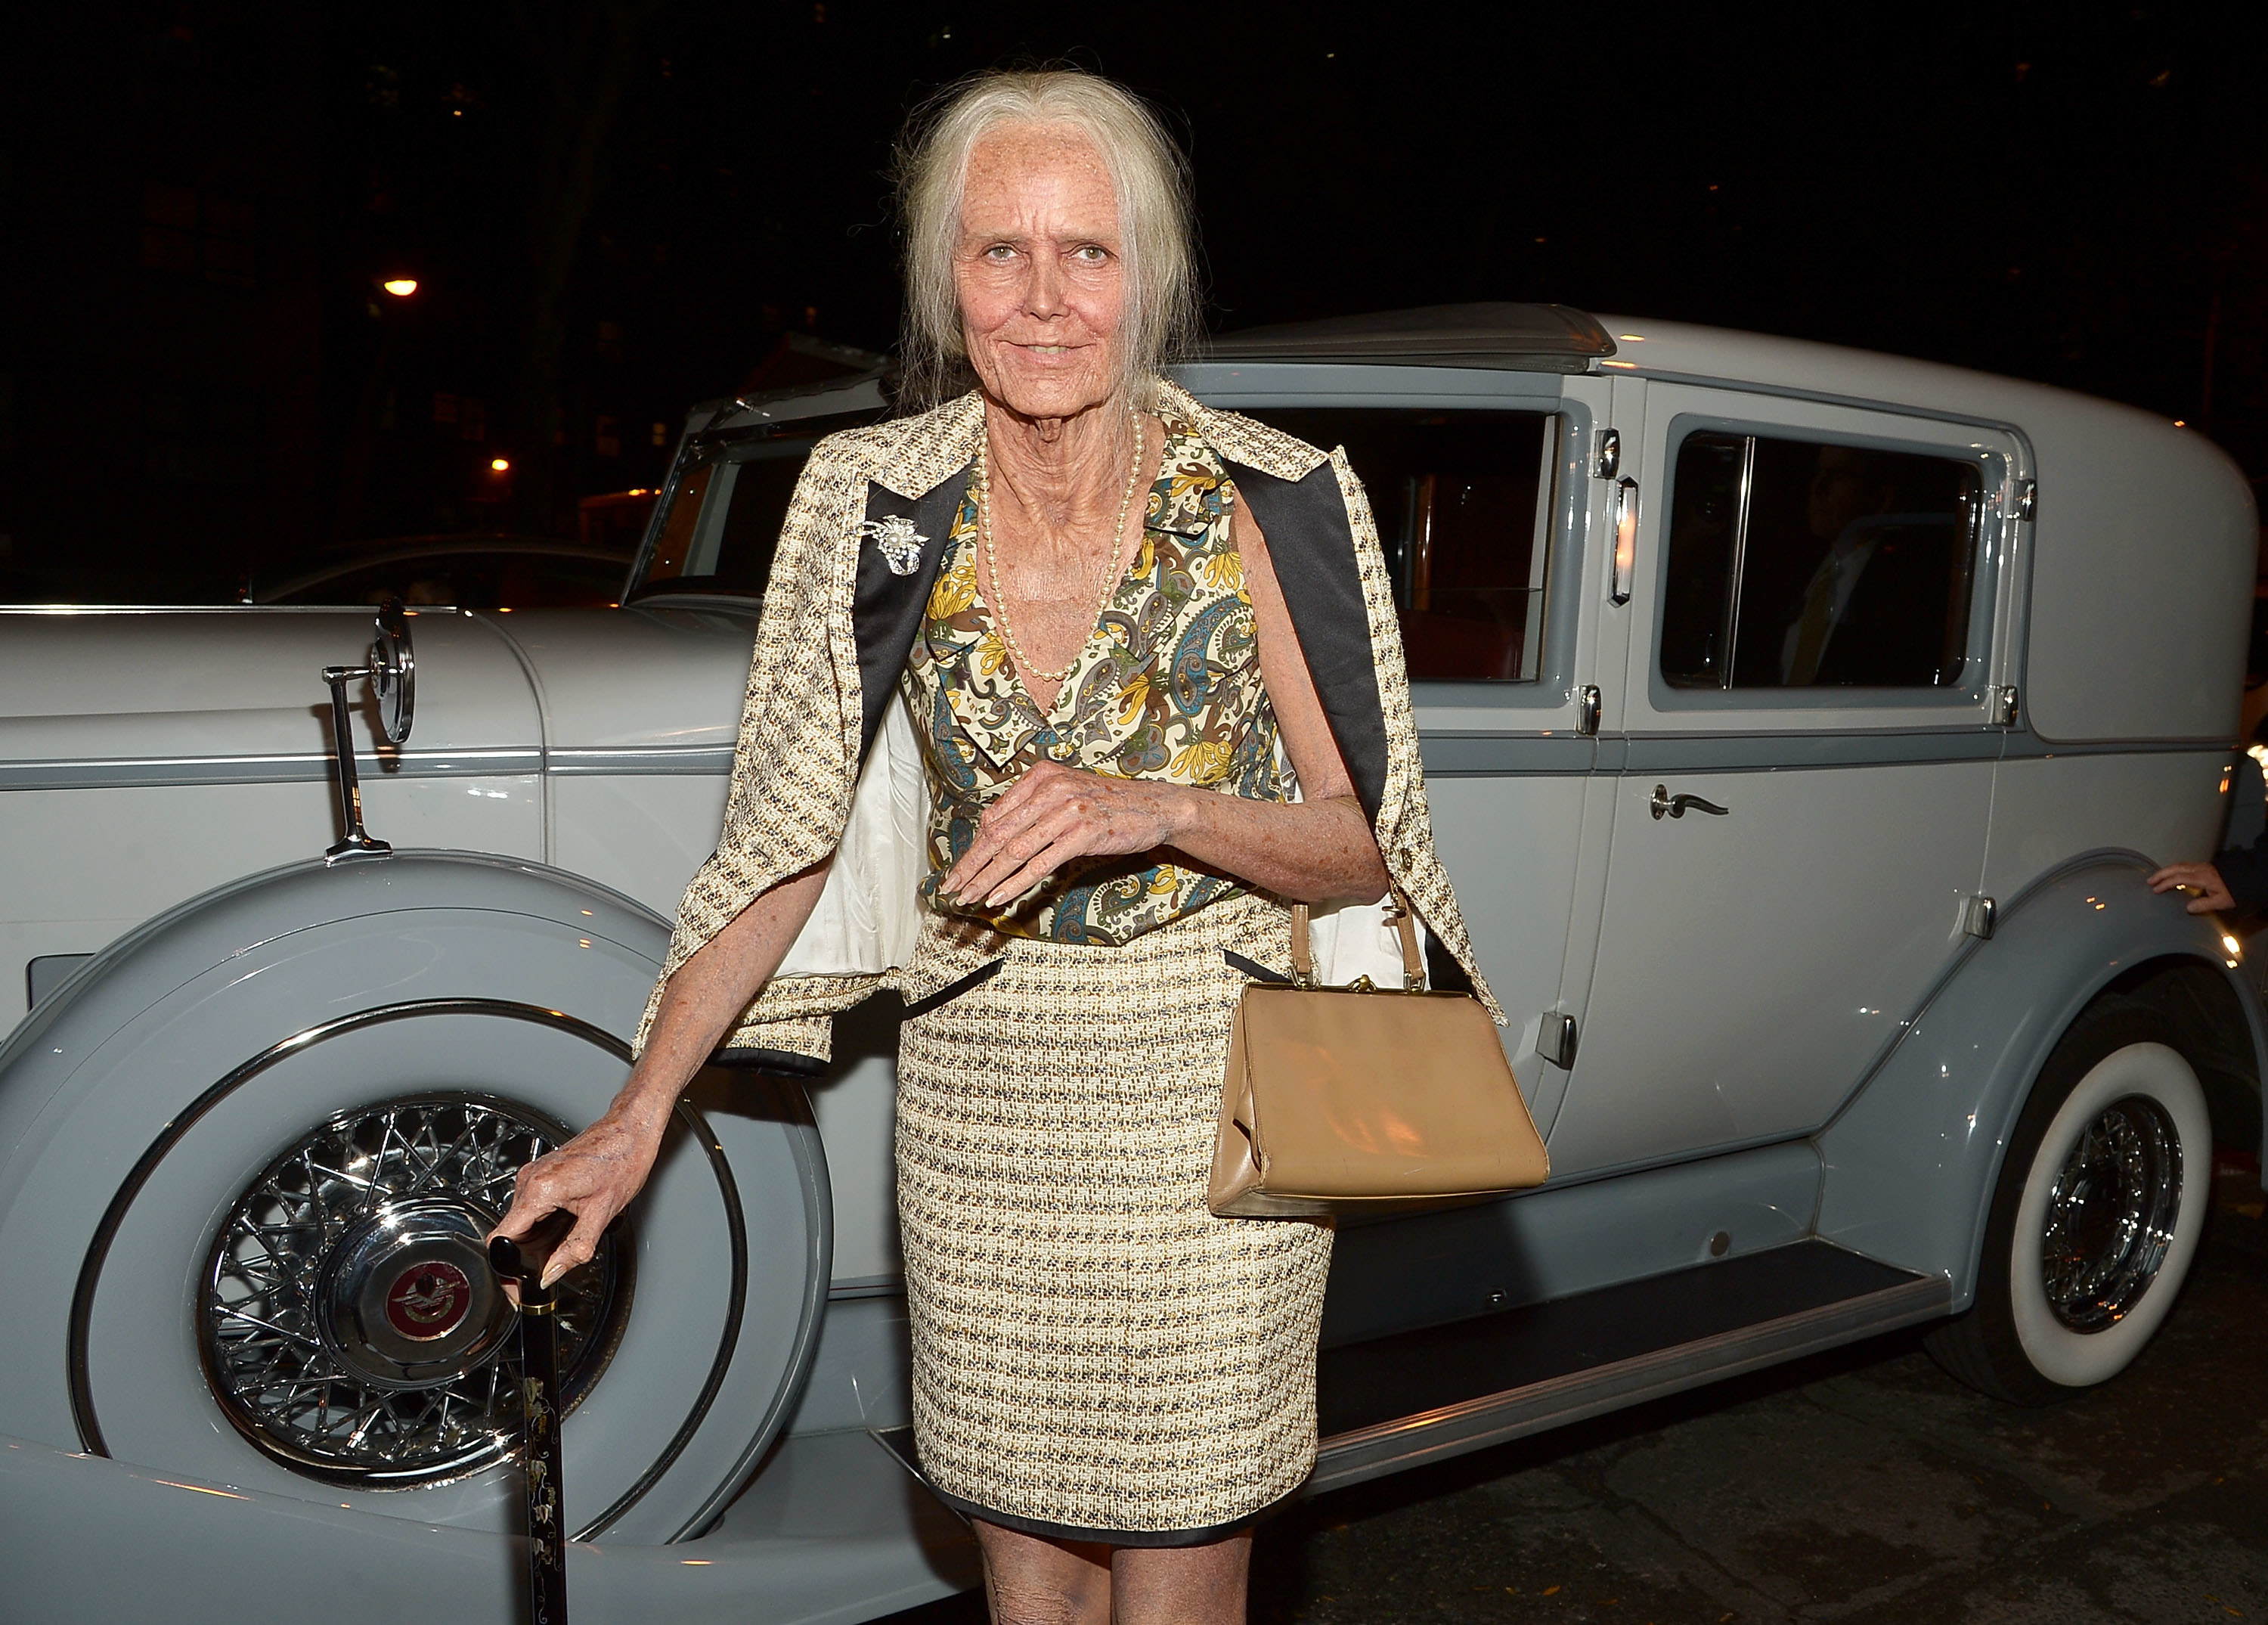 Heidi Klum dressed as an old woman in front of a fancy blue car.